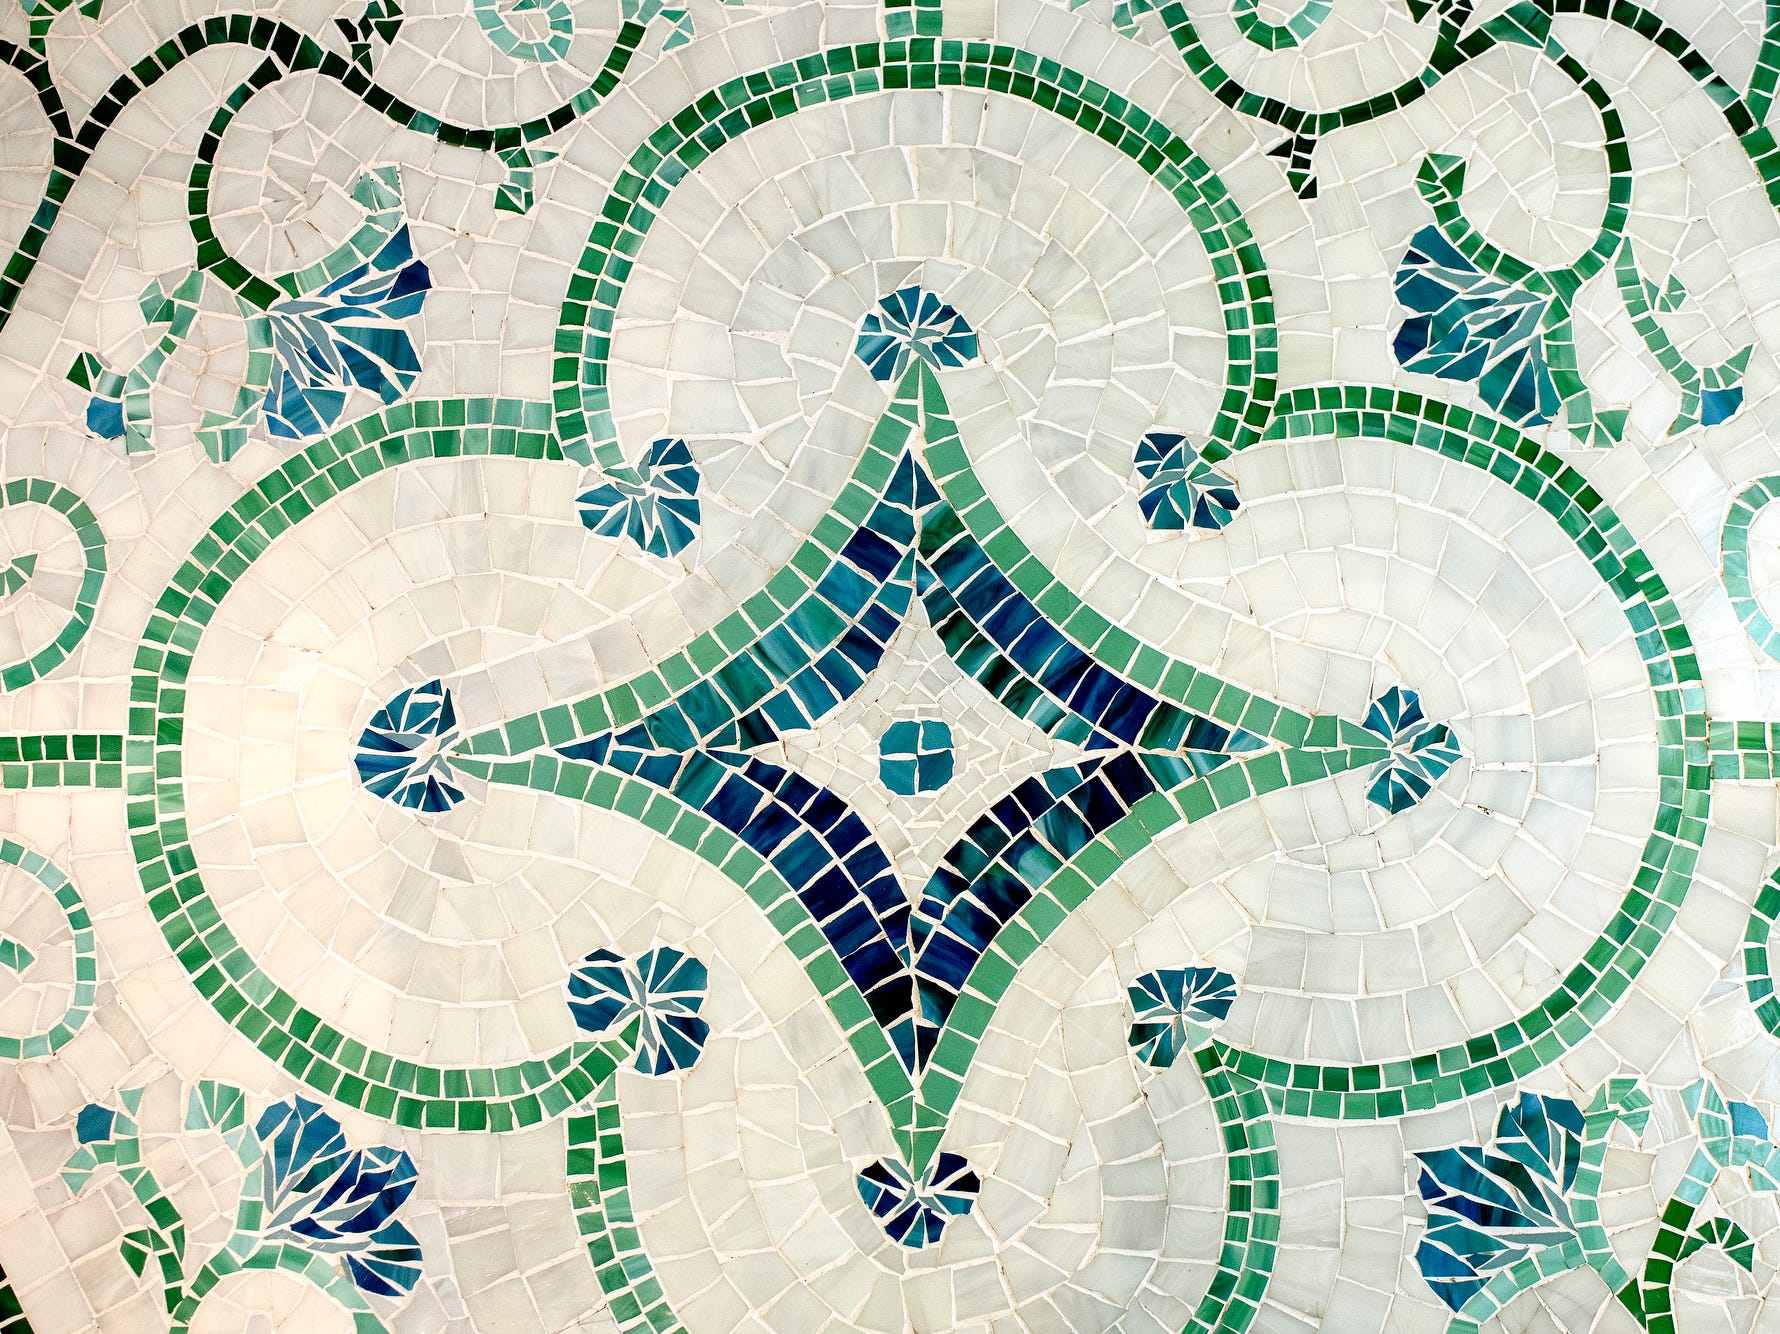 One of several of Deb Atkinson's mosaics is seen in the floor of the master suite bathroom inside the historically Colonial home photographed on Tuesday, July 24, 2018, in East Lansing. Built in 1930, the Colonial-style home surrounded by greenery and beautifully renovated is now on the market.